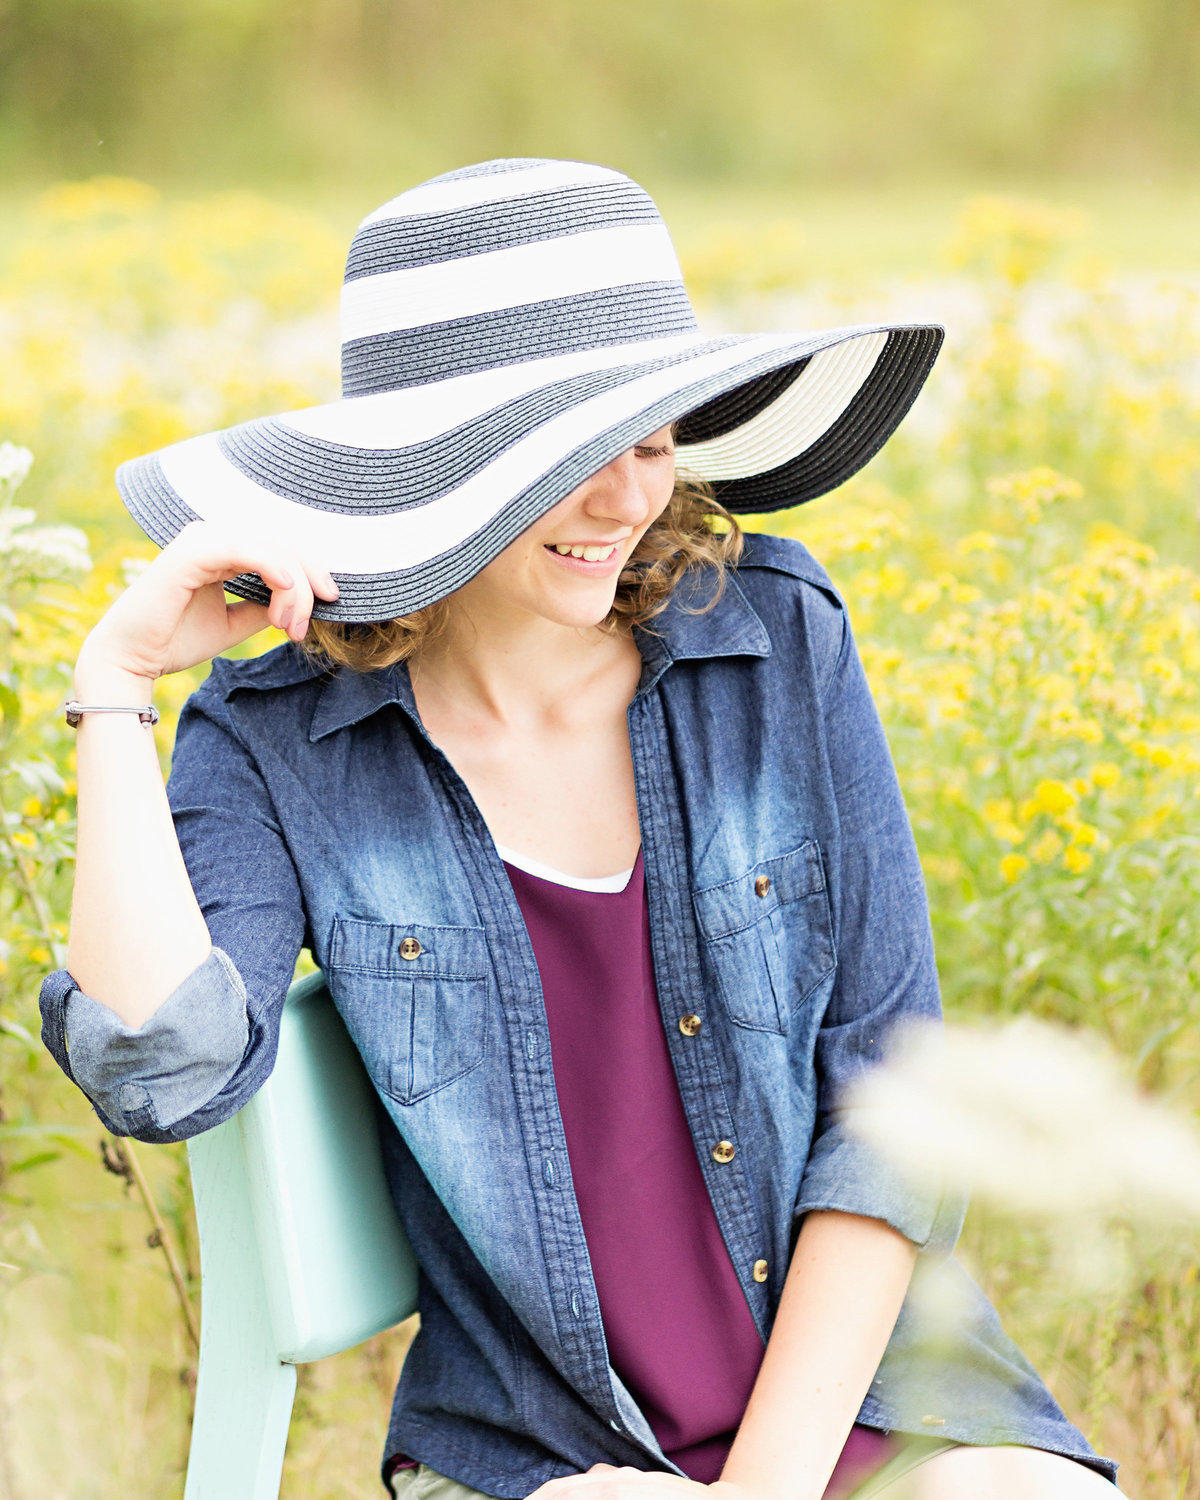 Senior girl sitting in field of wild flowers wearing large hat